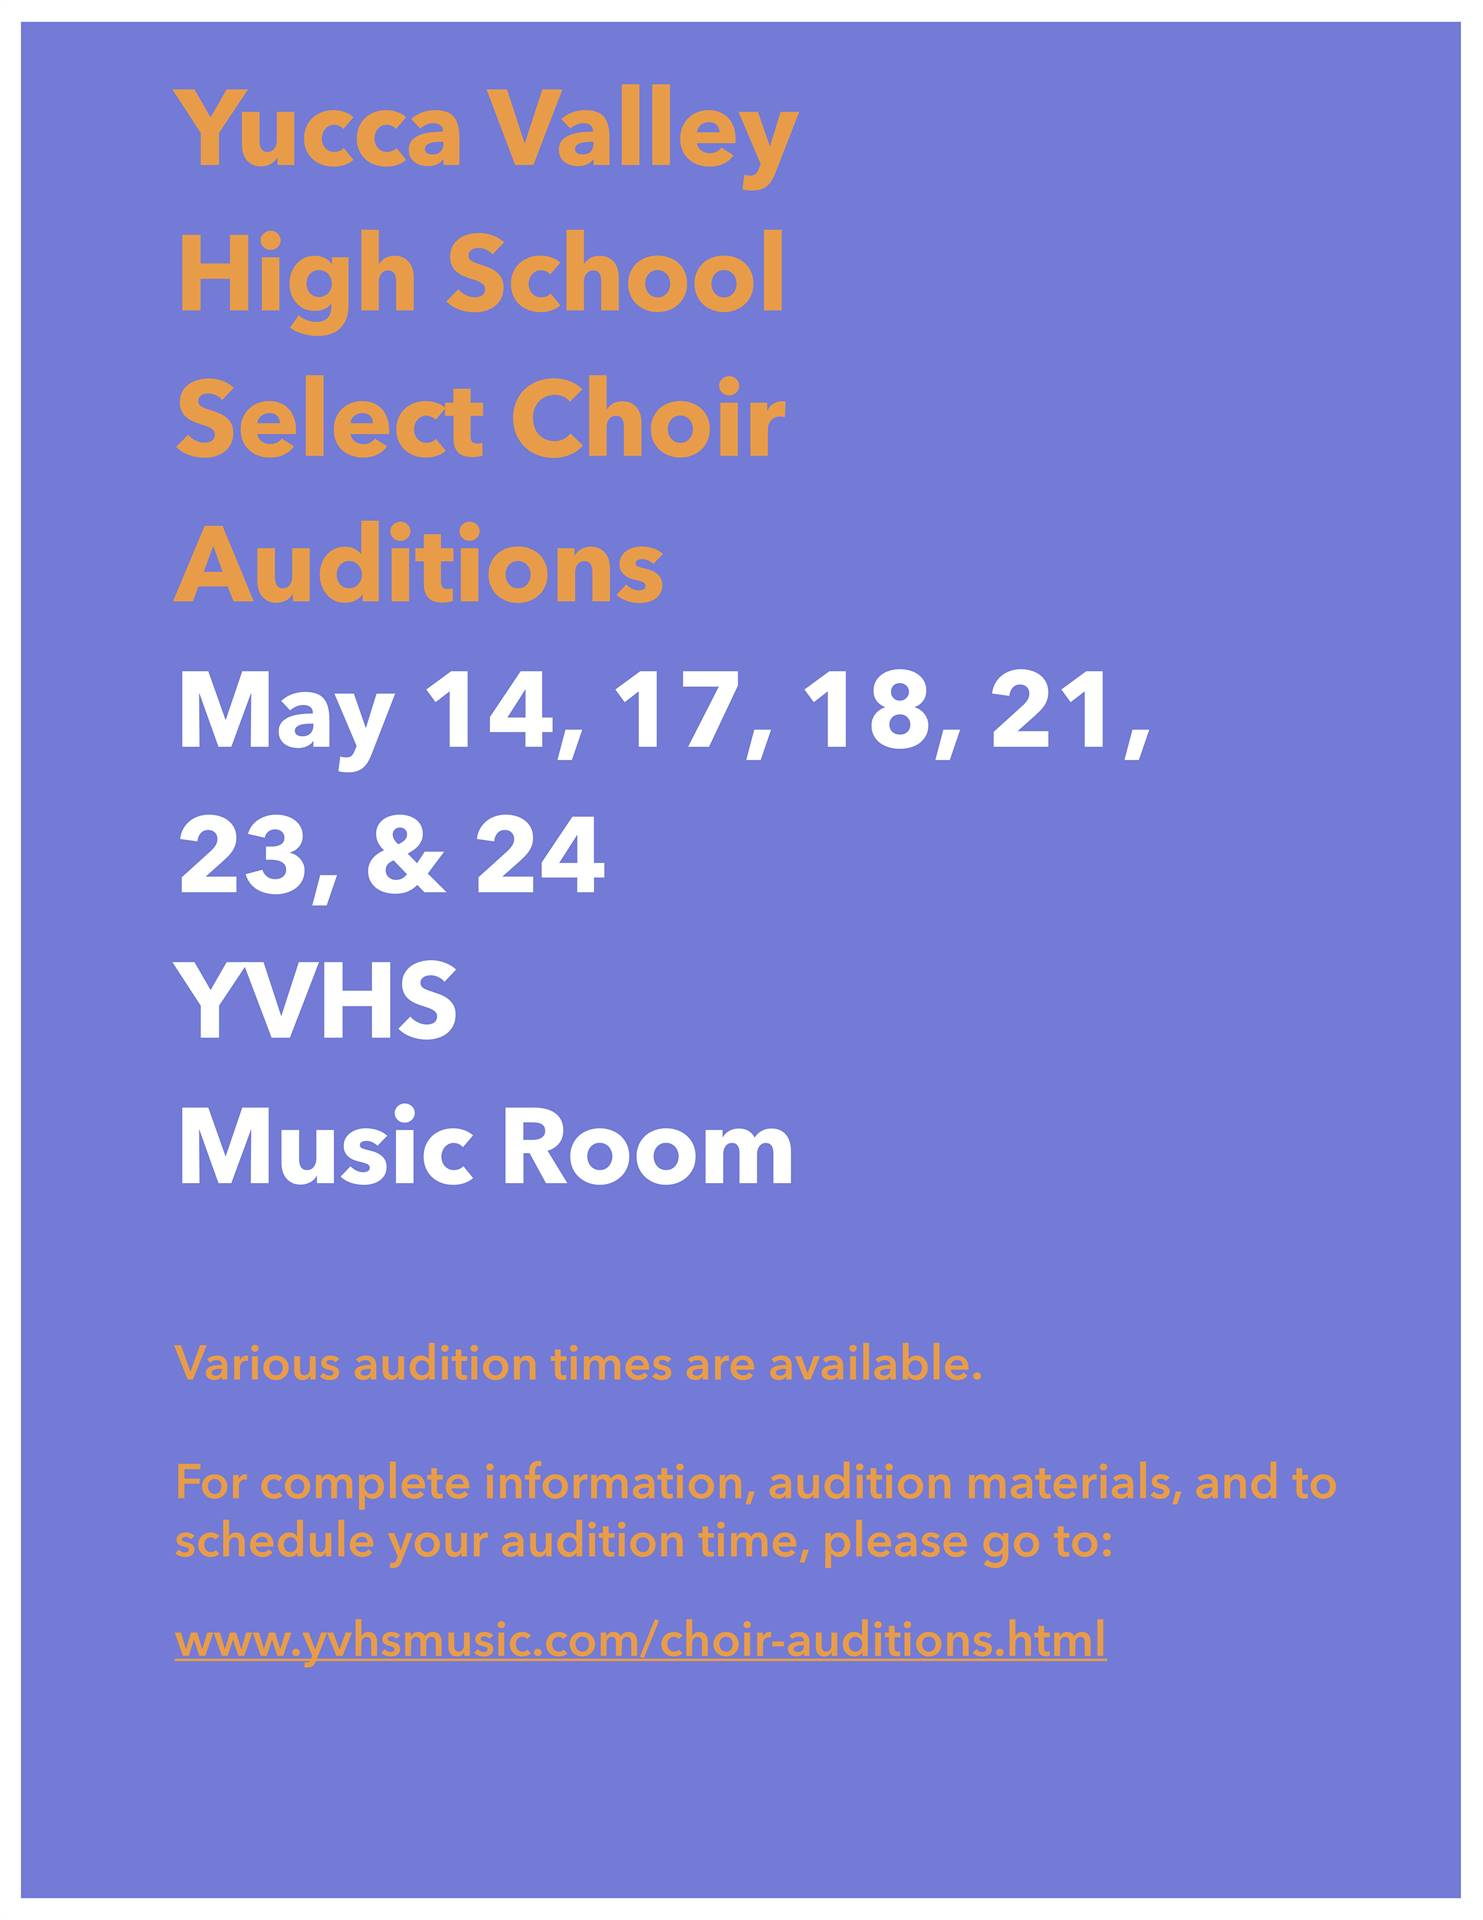 YVHS Select Choir Audition Information